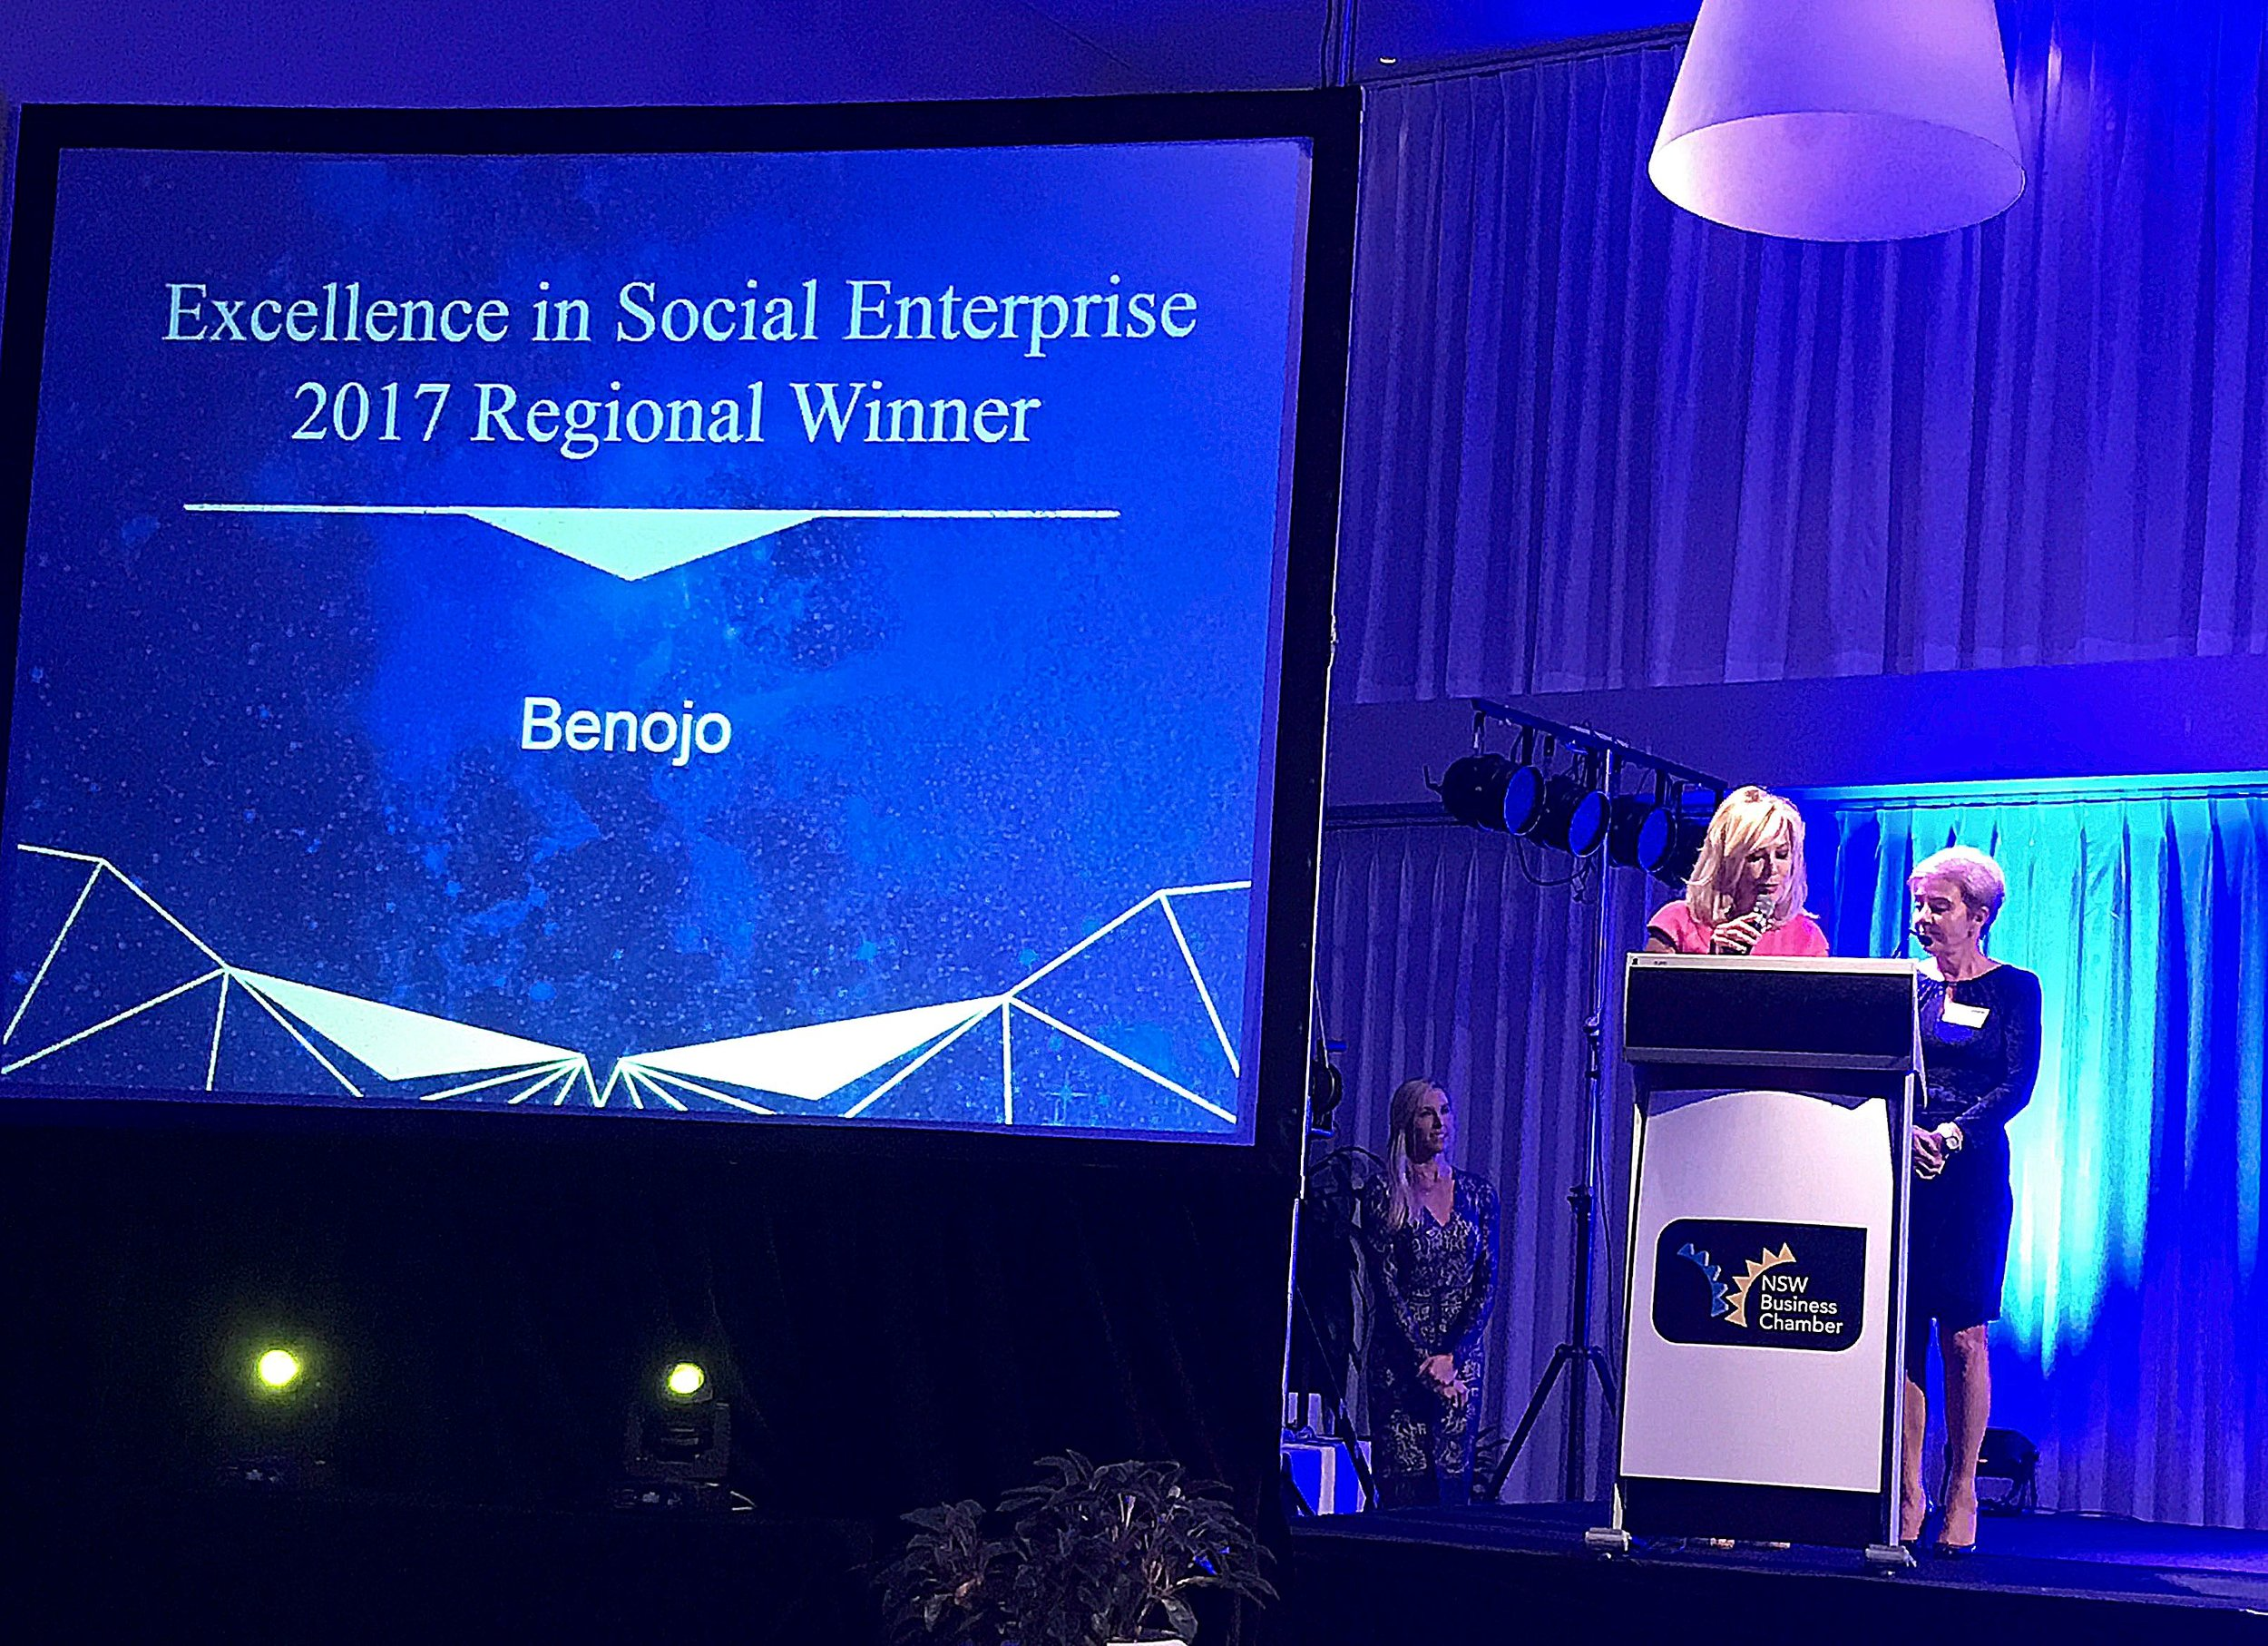 Anne from Benojo accepting our award from Kerri-Anne Kennerly